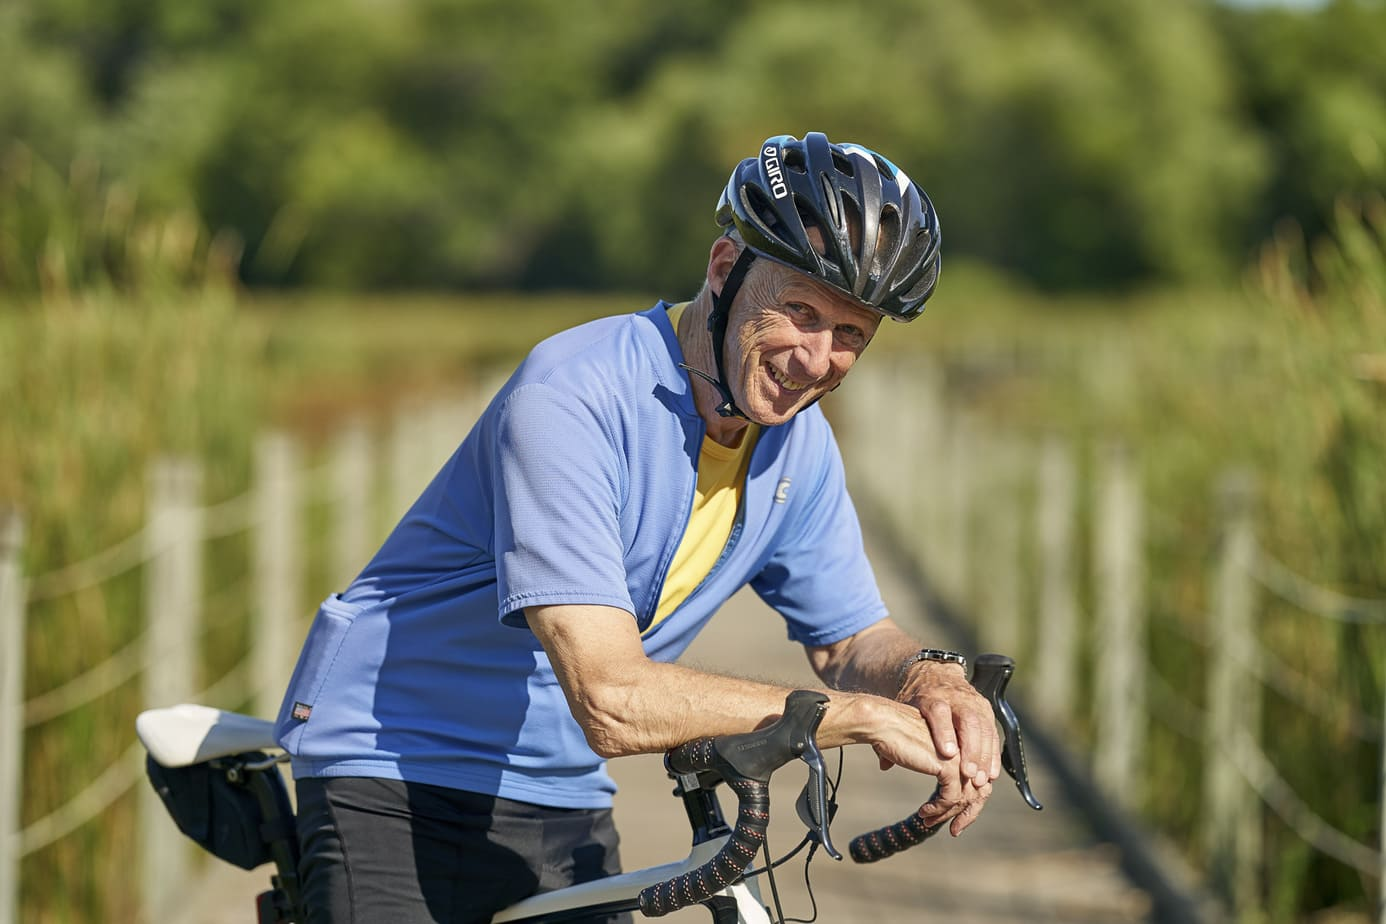 Retirement community photography. Active seniors, man riding bike